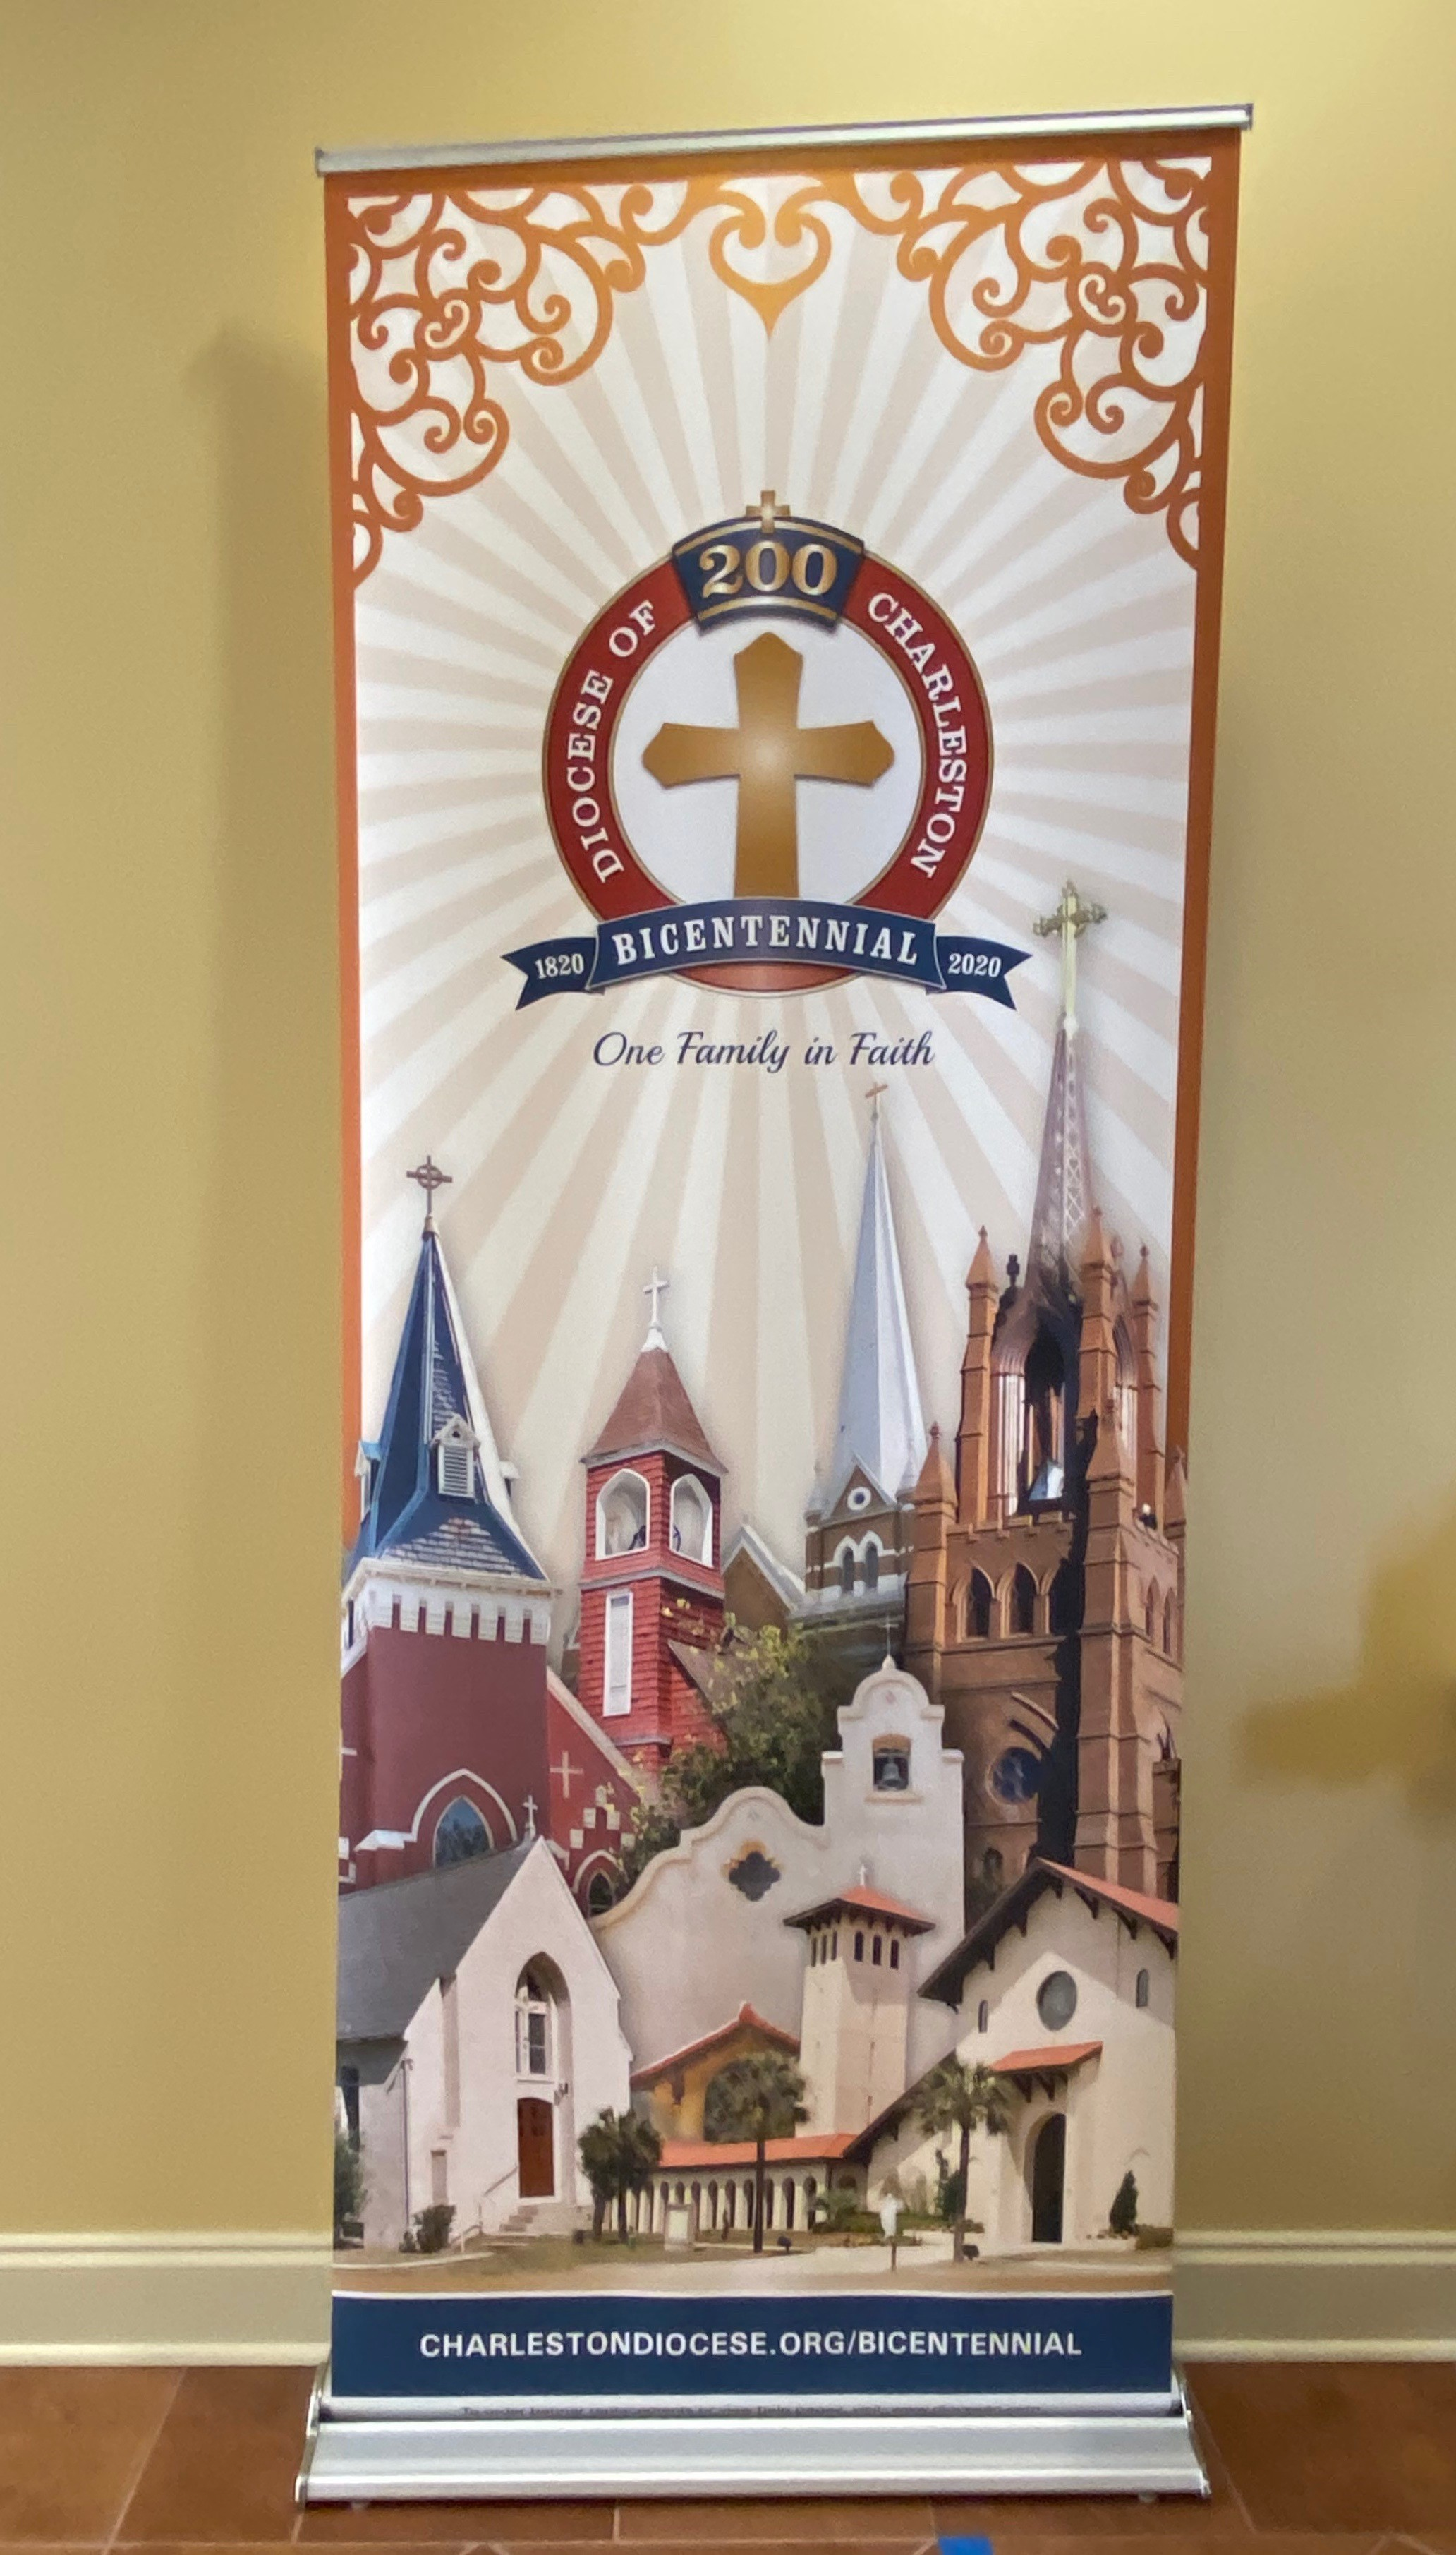 bicentennial banner with churches and a gold cross in a red boarder